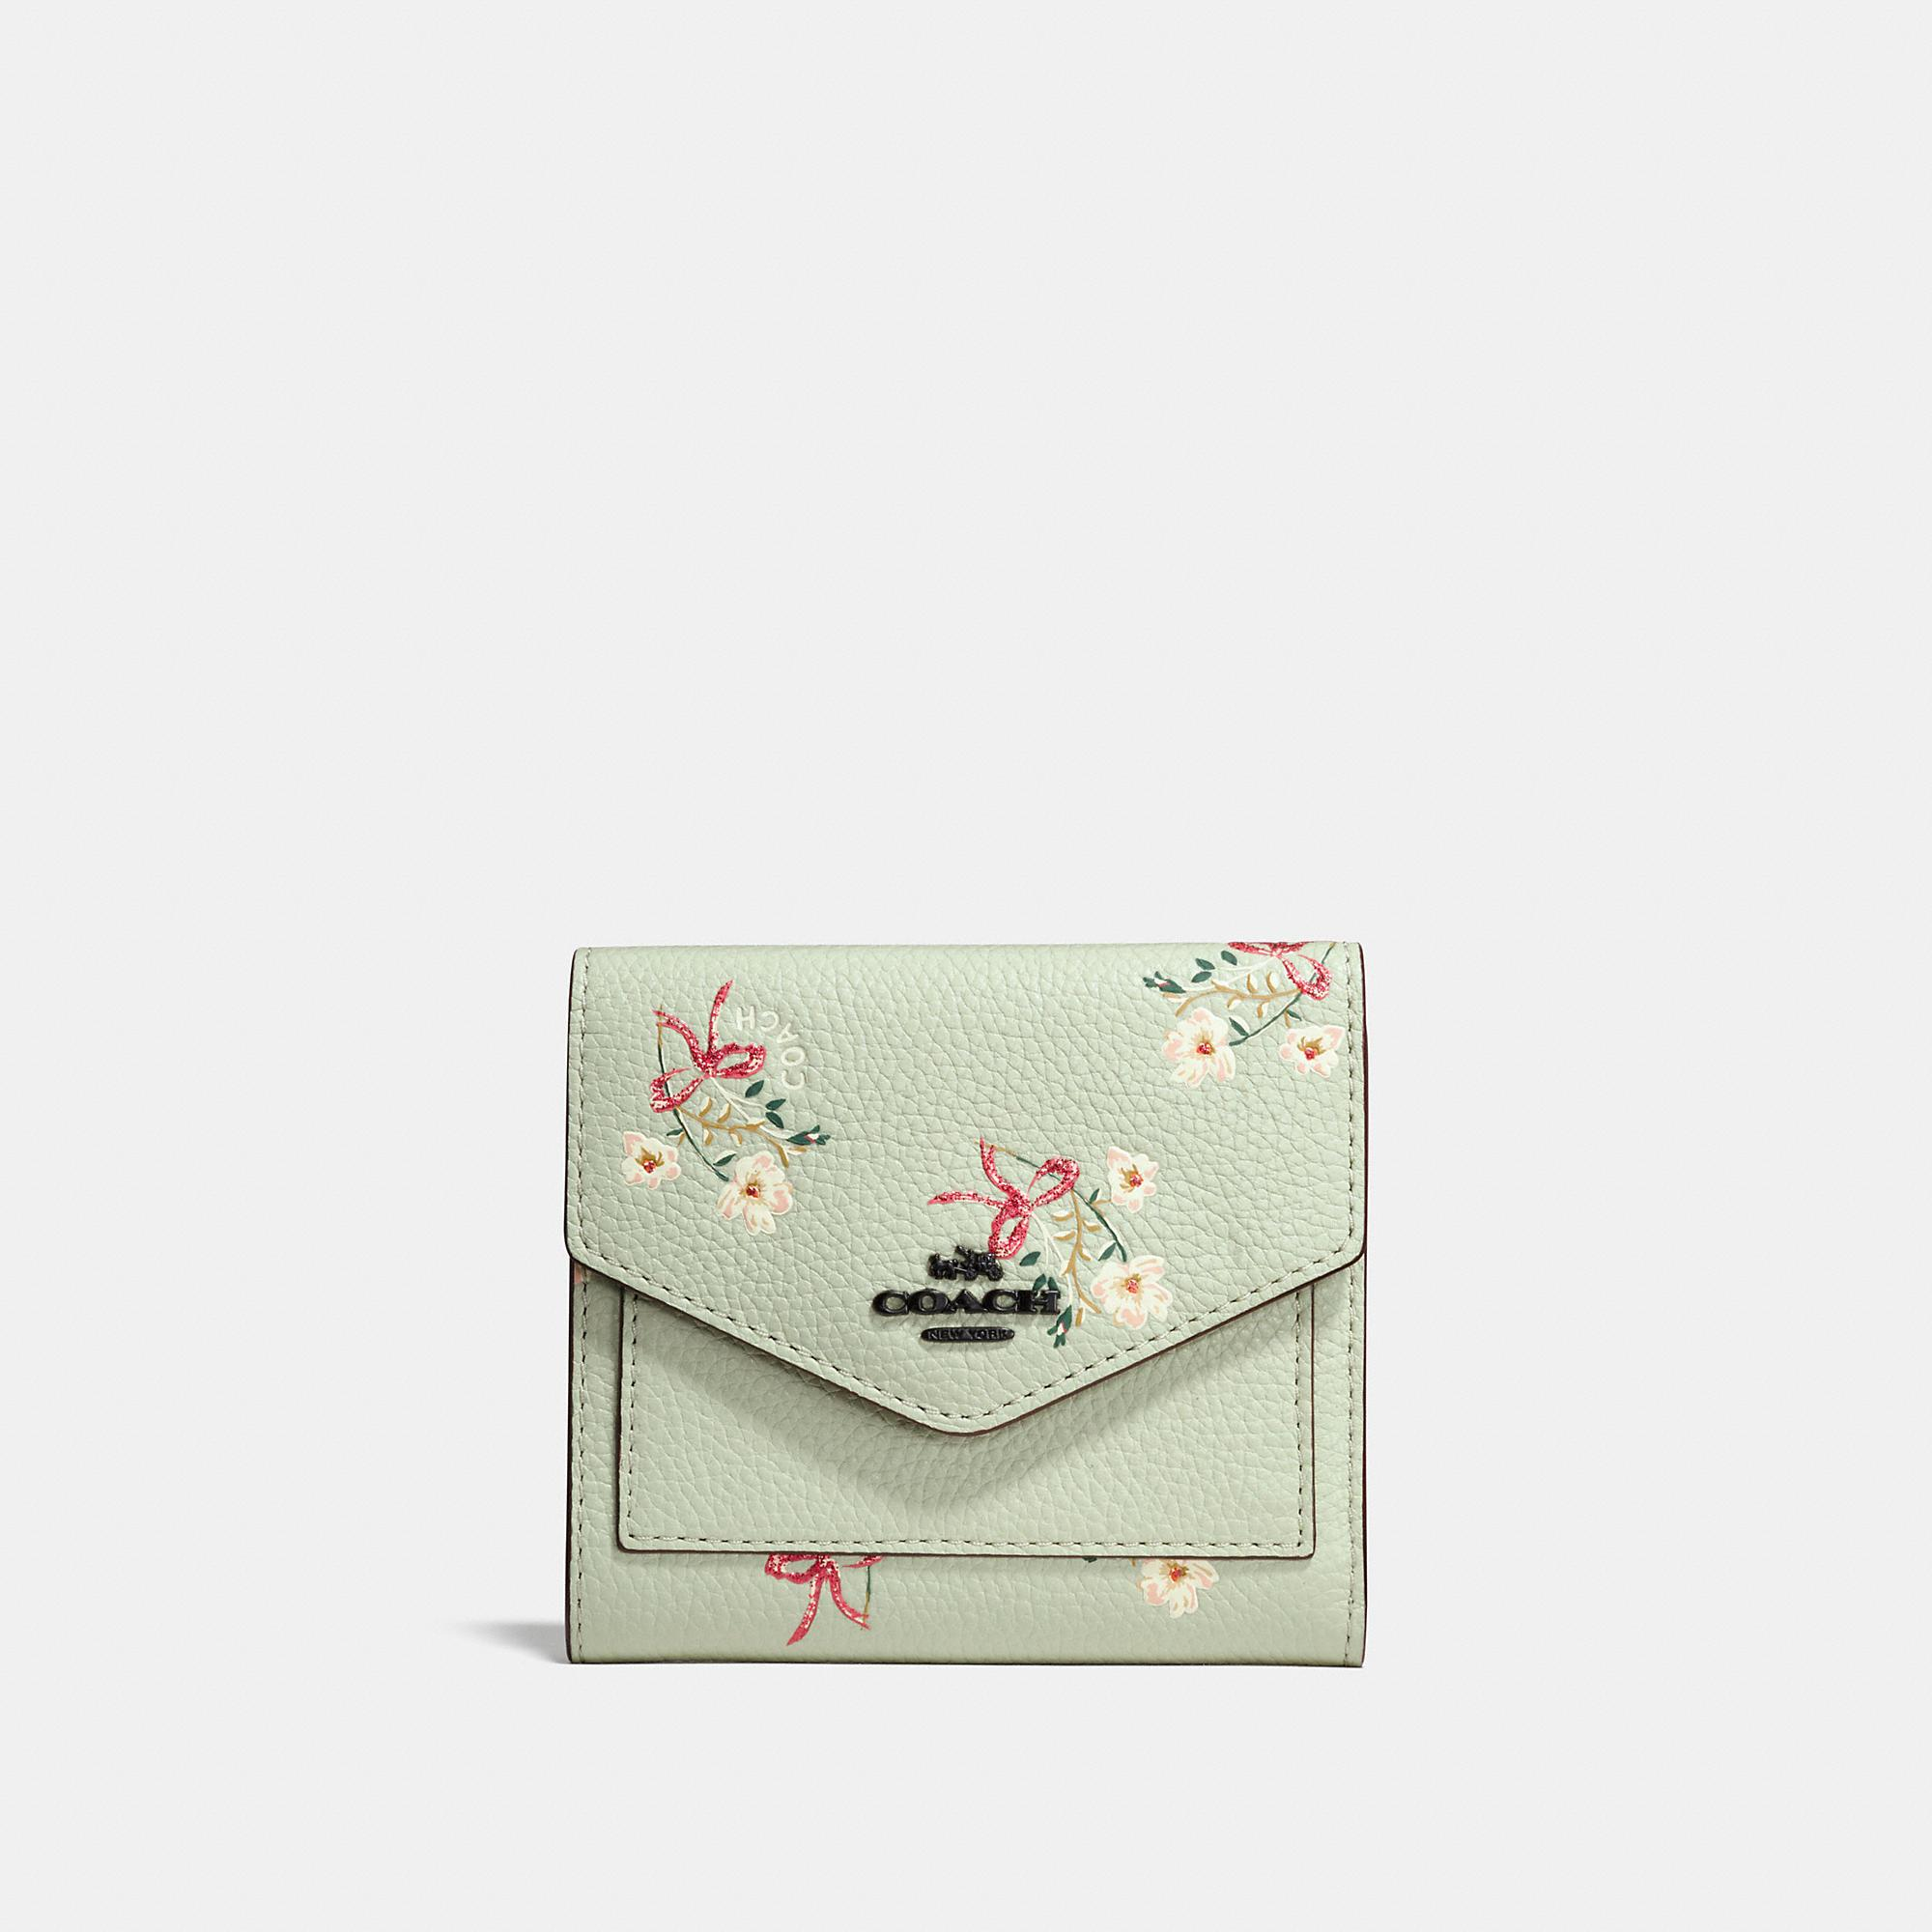 9f8b48918e7 Coach Small Wallet With Floral Bow Print In Pale Green/Black Copper ...